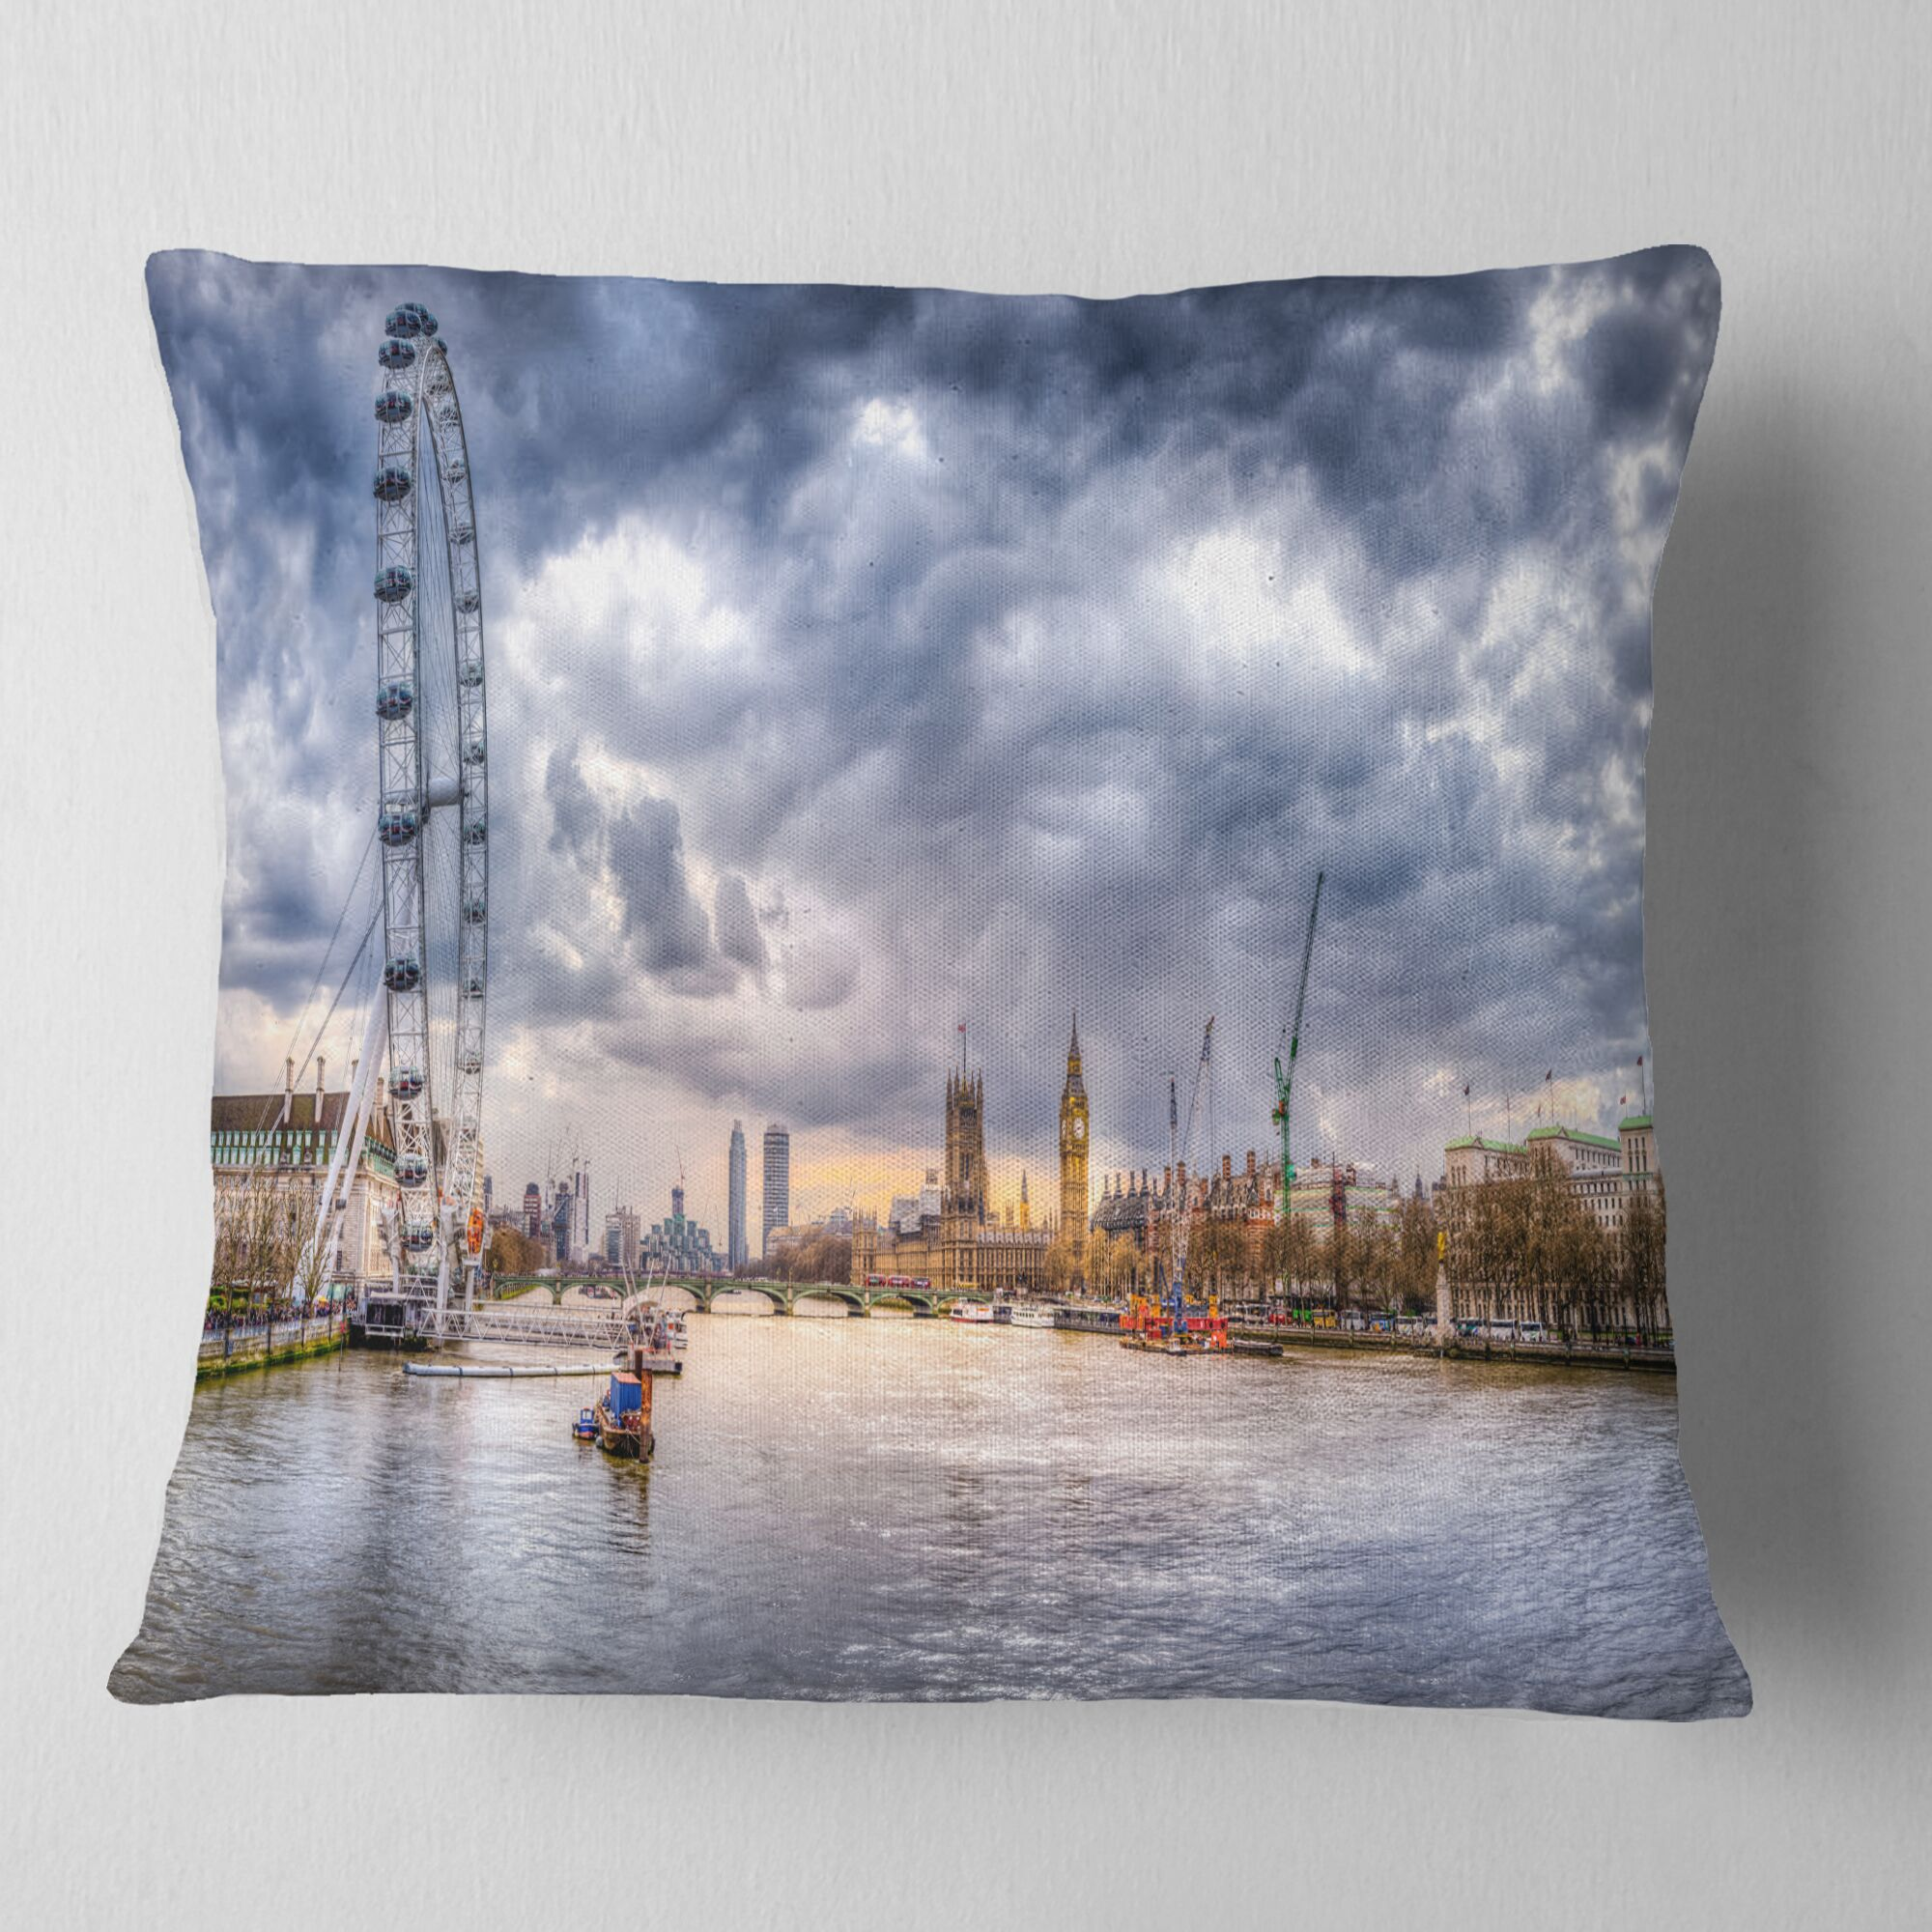 London Skyline and River Thames Cityscape Pillow Size: 26